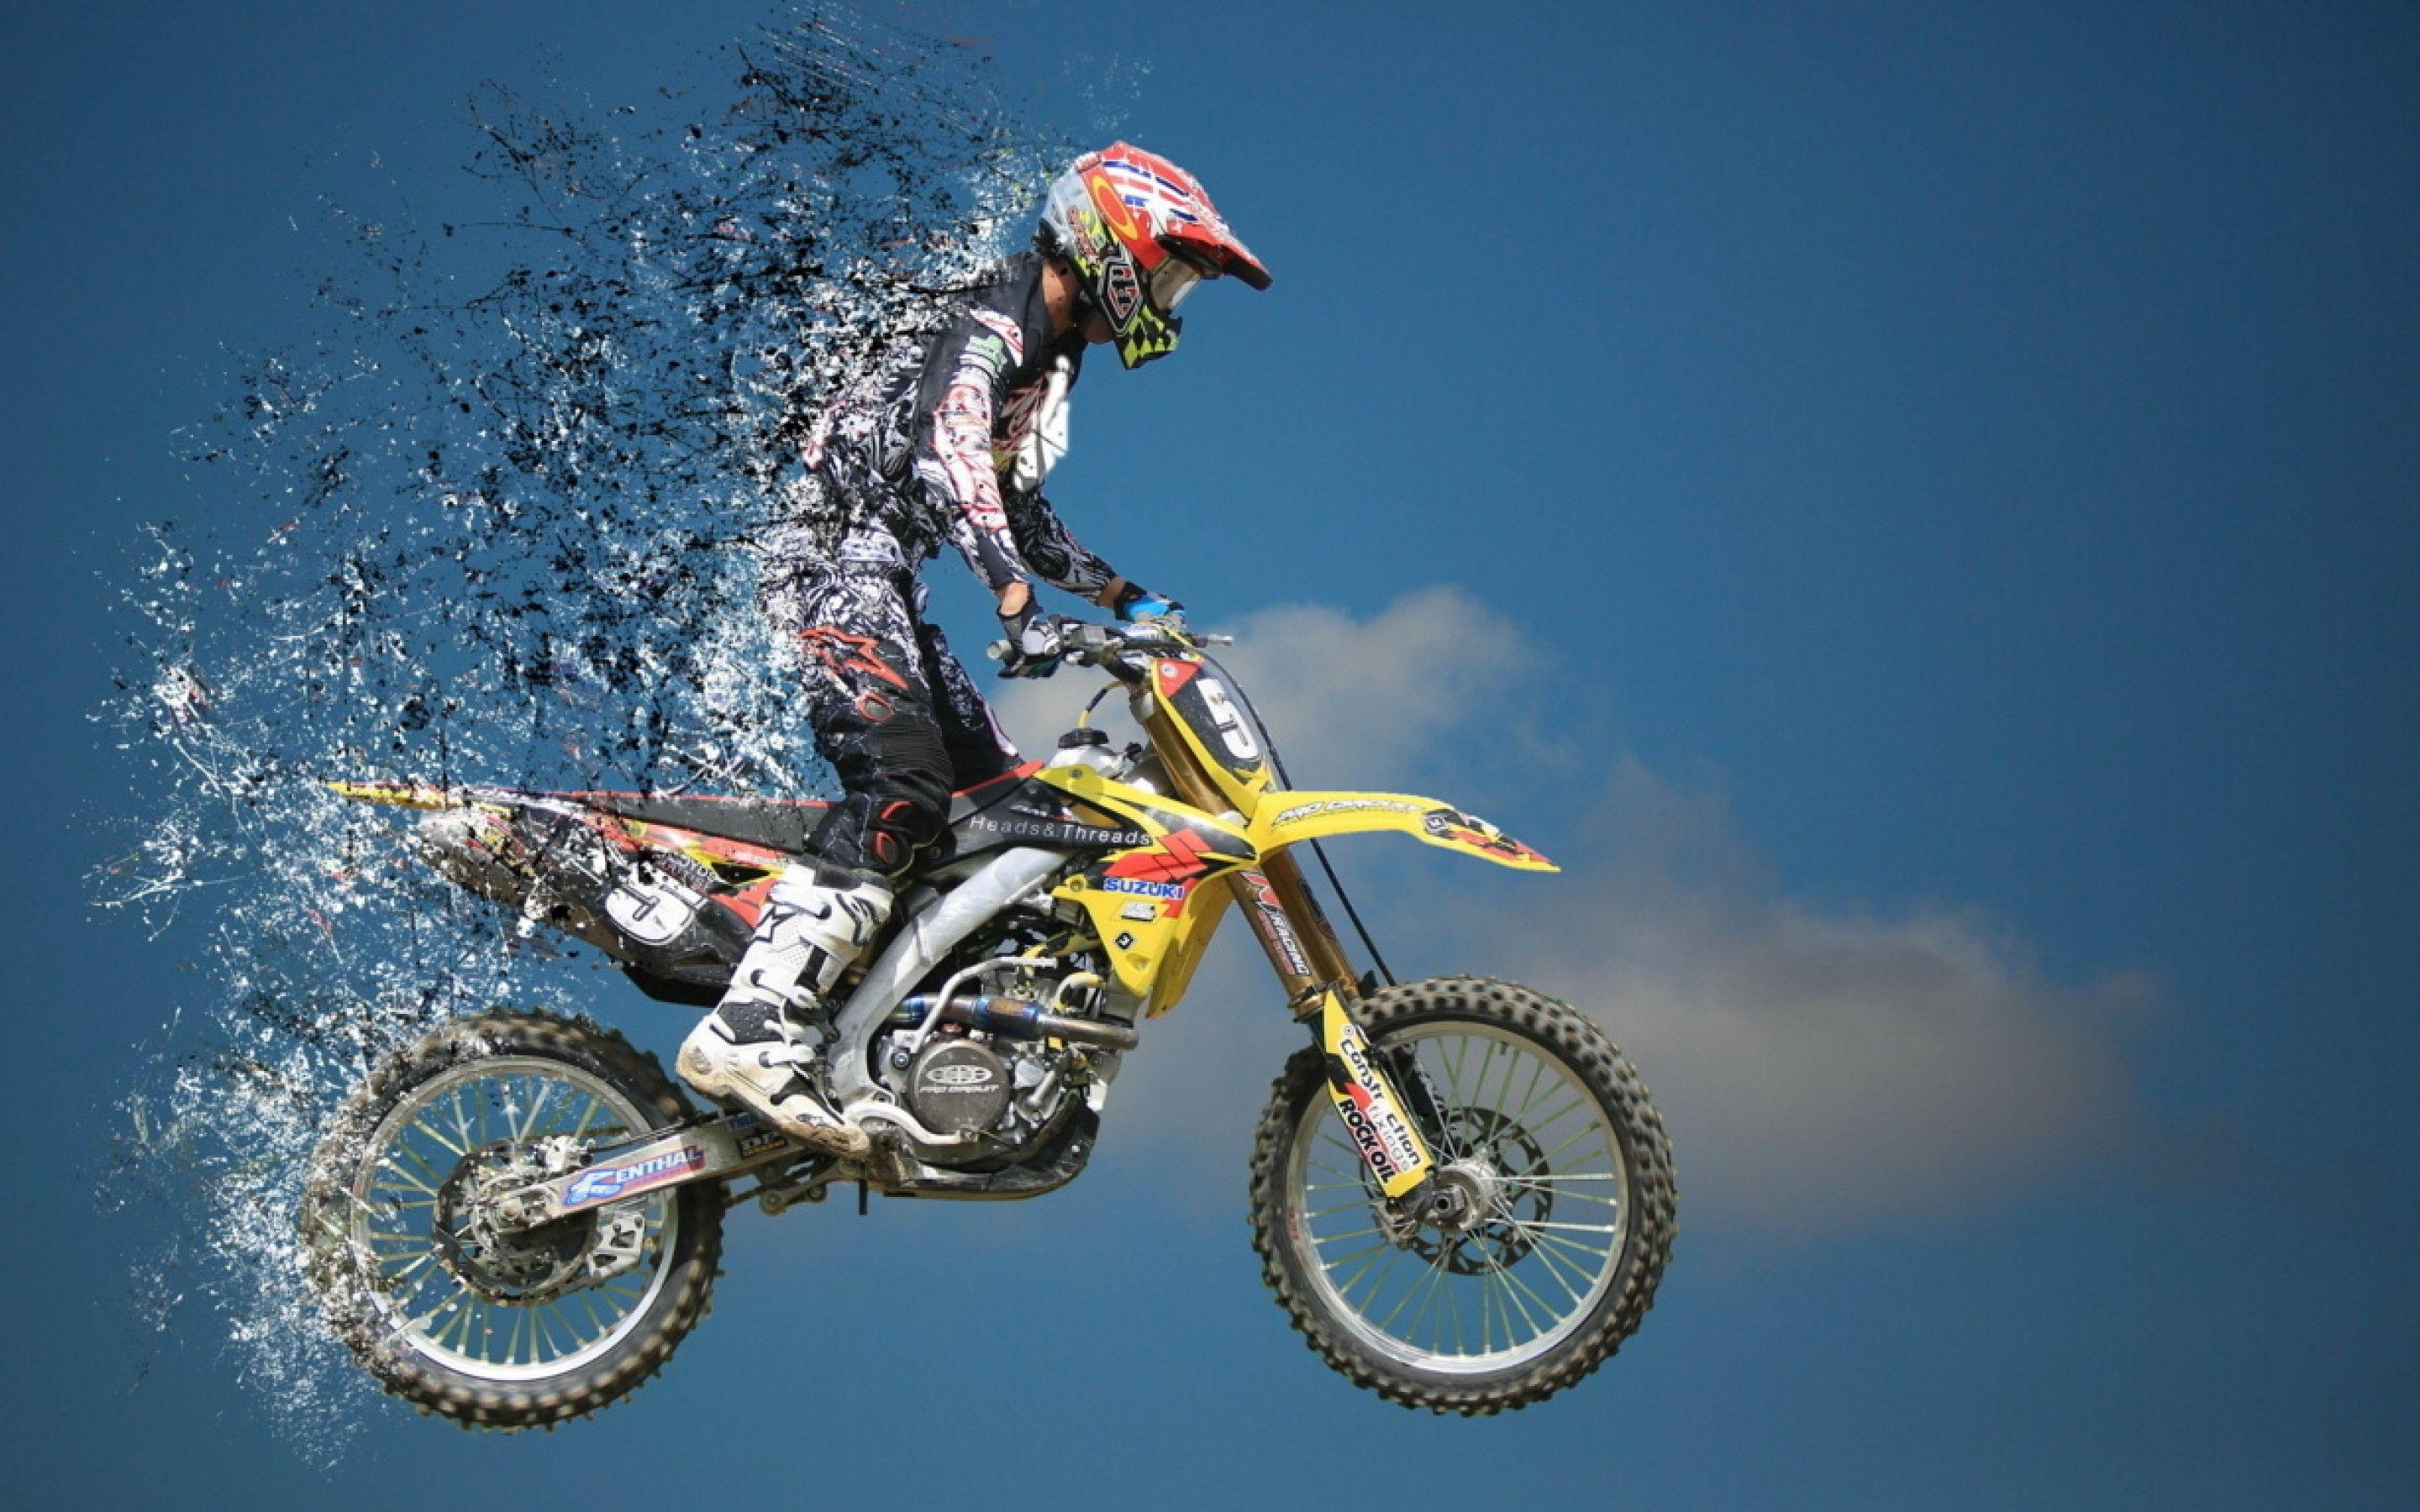 46+ Stunt Wallpapers, HD Stunt Wallpapers and Photos